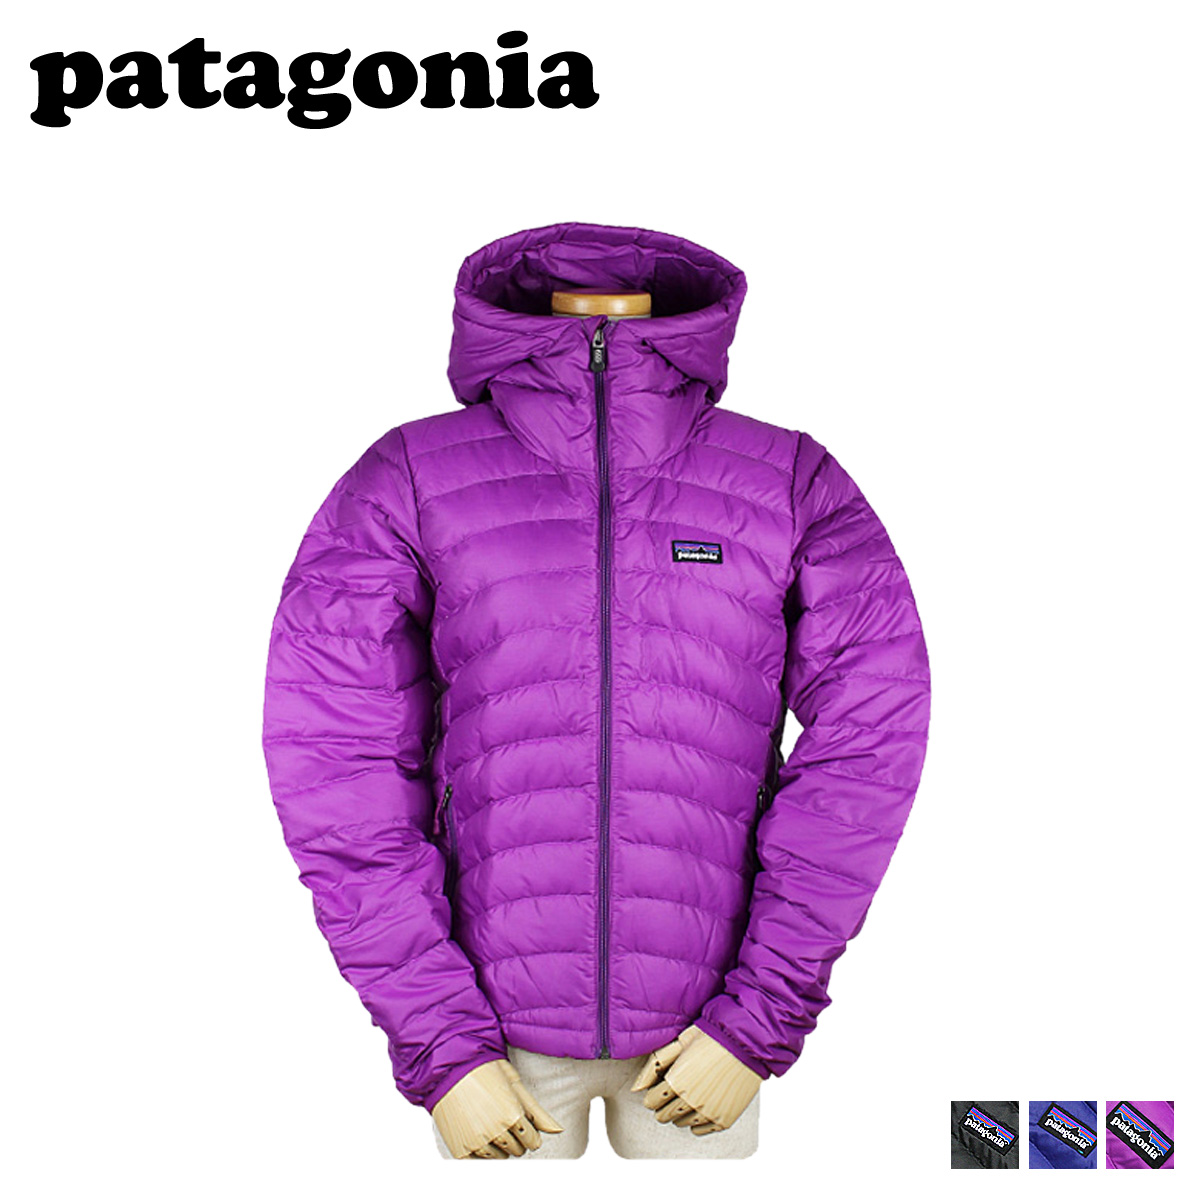 Hoody 3 Jacket Full Color 84710 Womens Lady's Sweater Down Zip Patagonia vmOy0nNw8